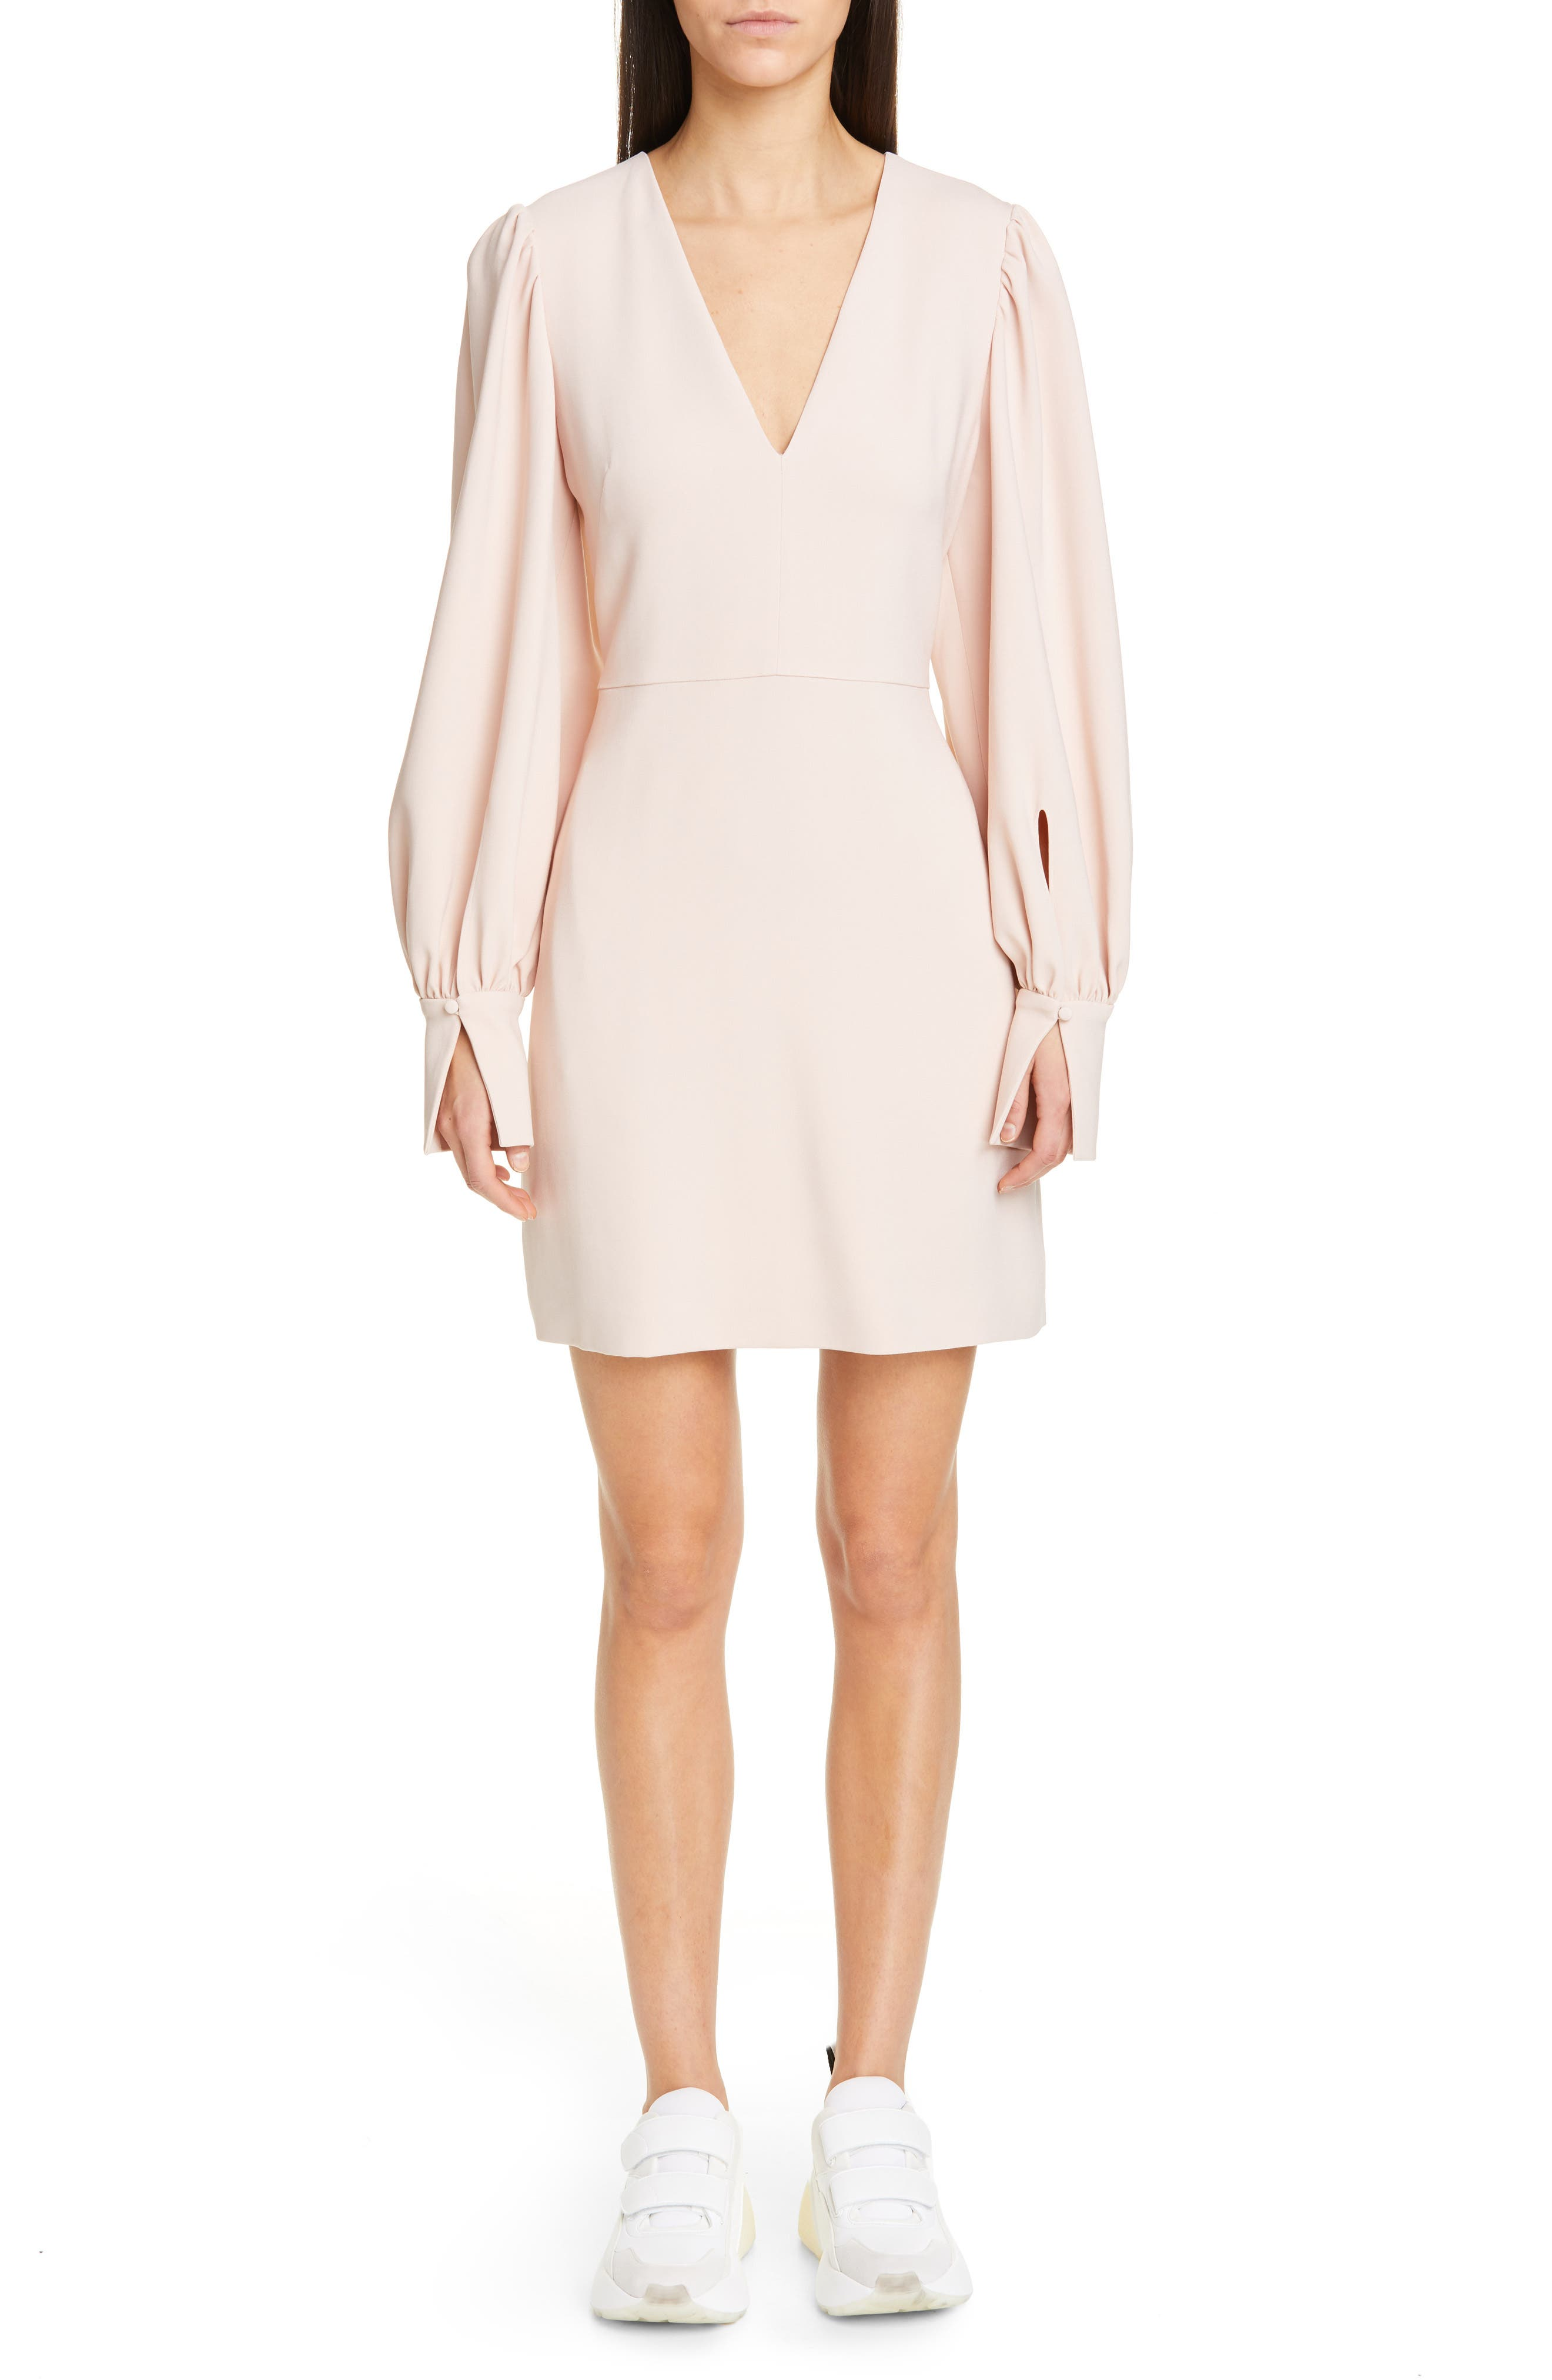 Stella Mccartney Long Sleeve Stretch Cady Dress, 8 IT - Pink